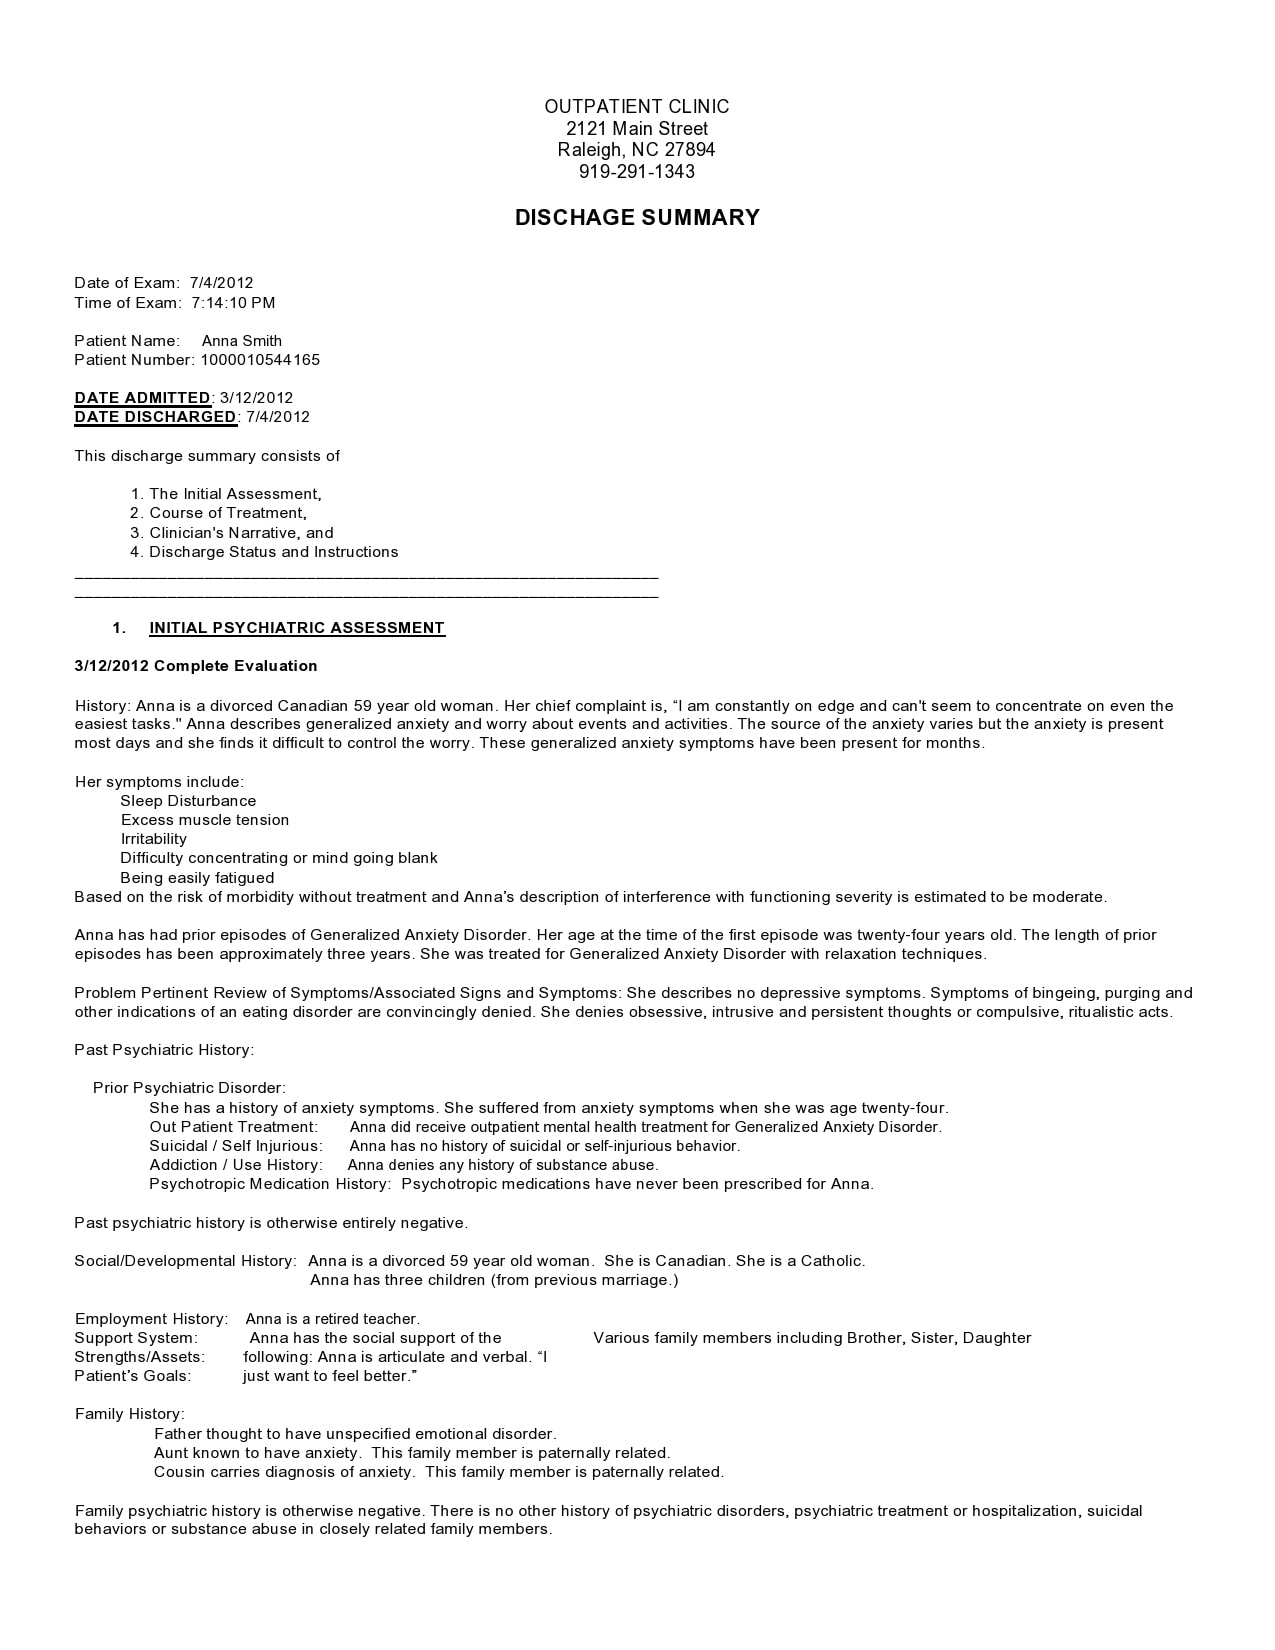 discharge summary template 15